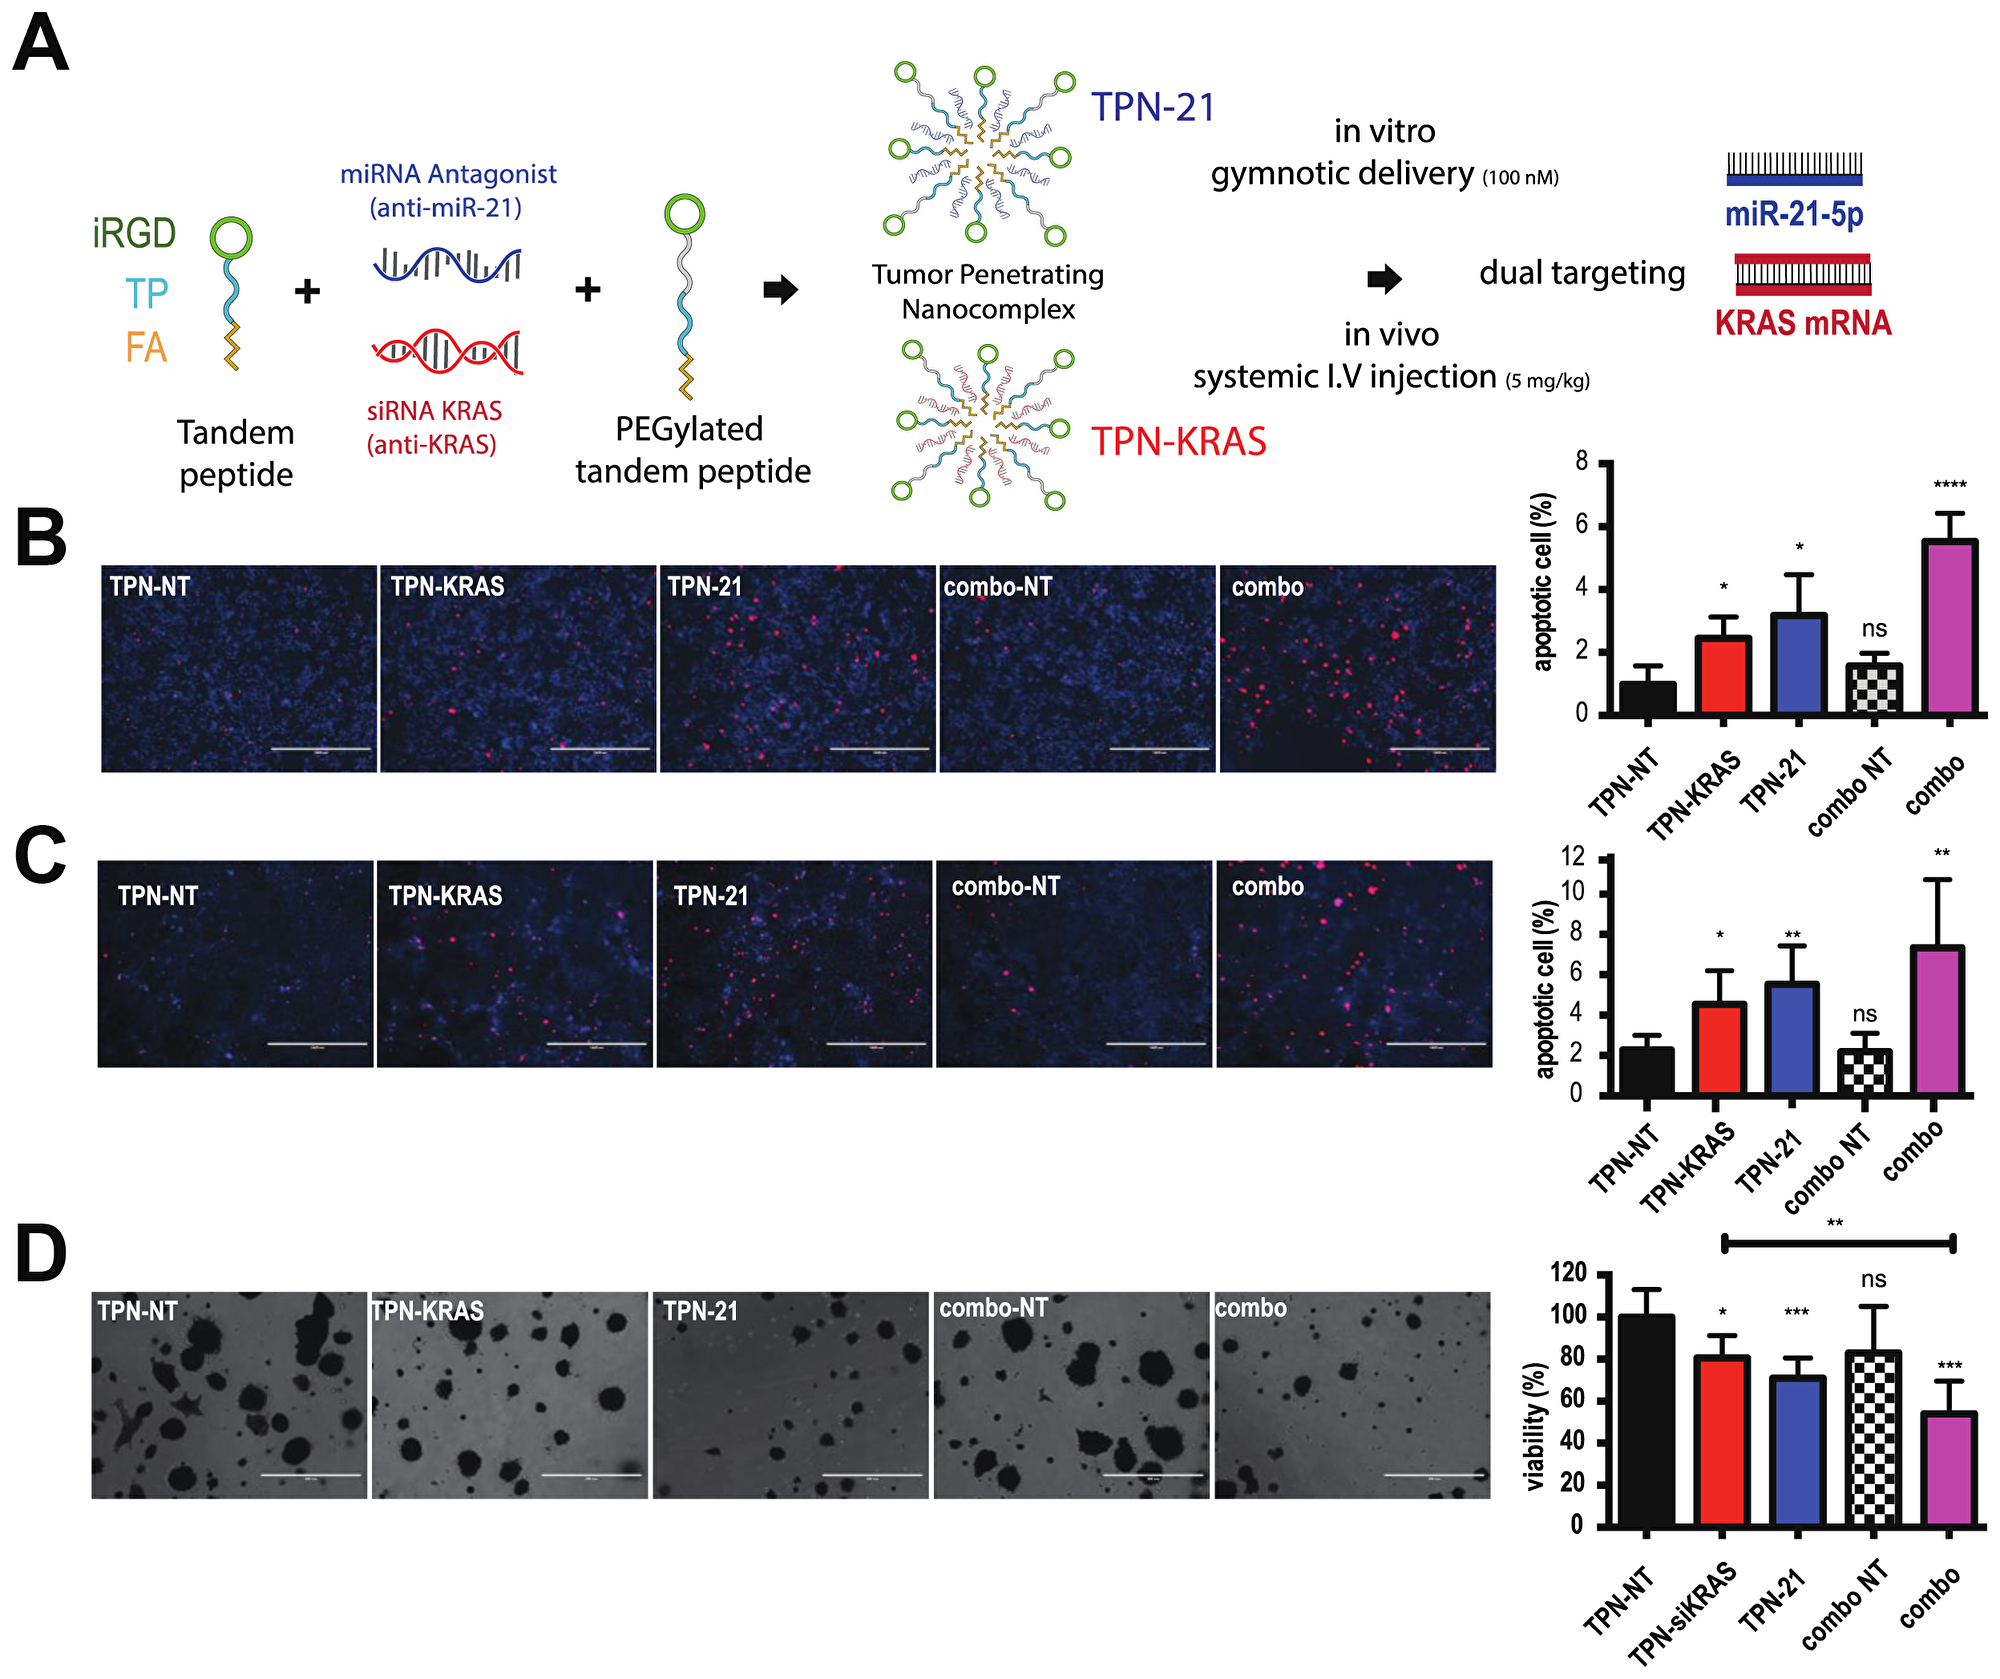 Combining antimiR-21 and si-KRAS increases apoptosis and enhances the anti-proliferative effect in PDAC cells and organoids.